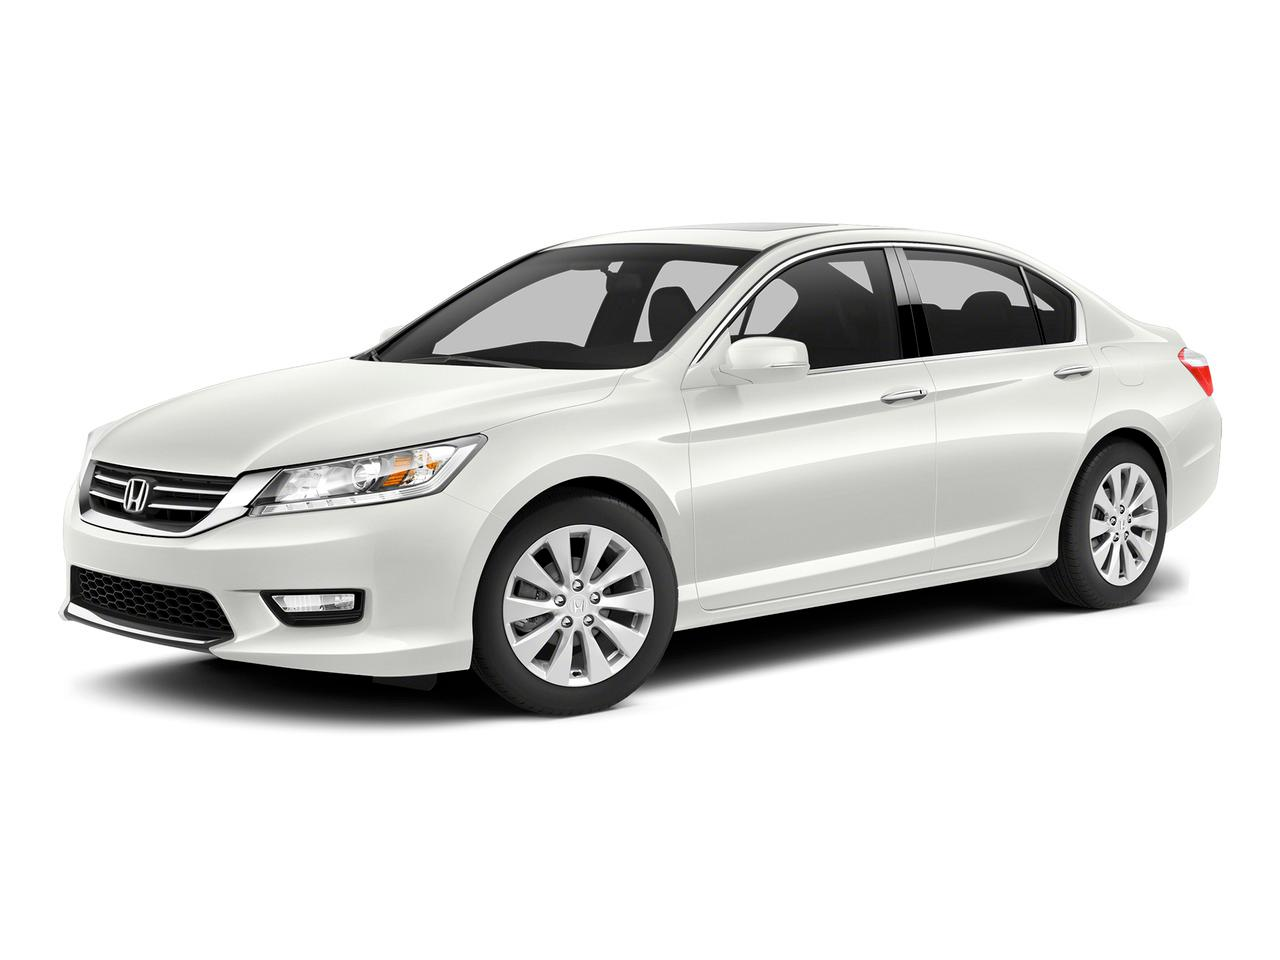 2015 Honda Accord Sedan Vehicle Photo in Danbury, CT 06810